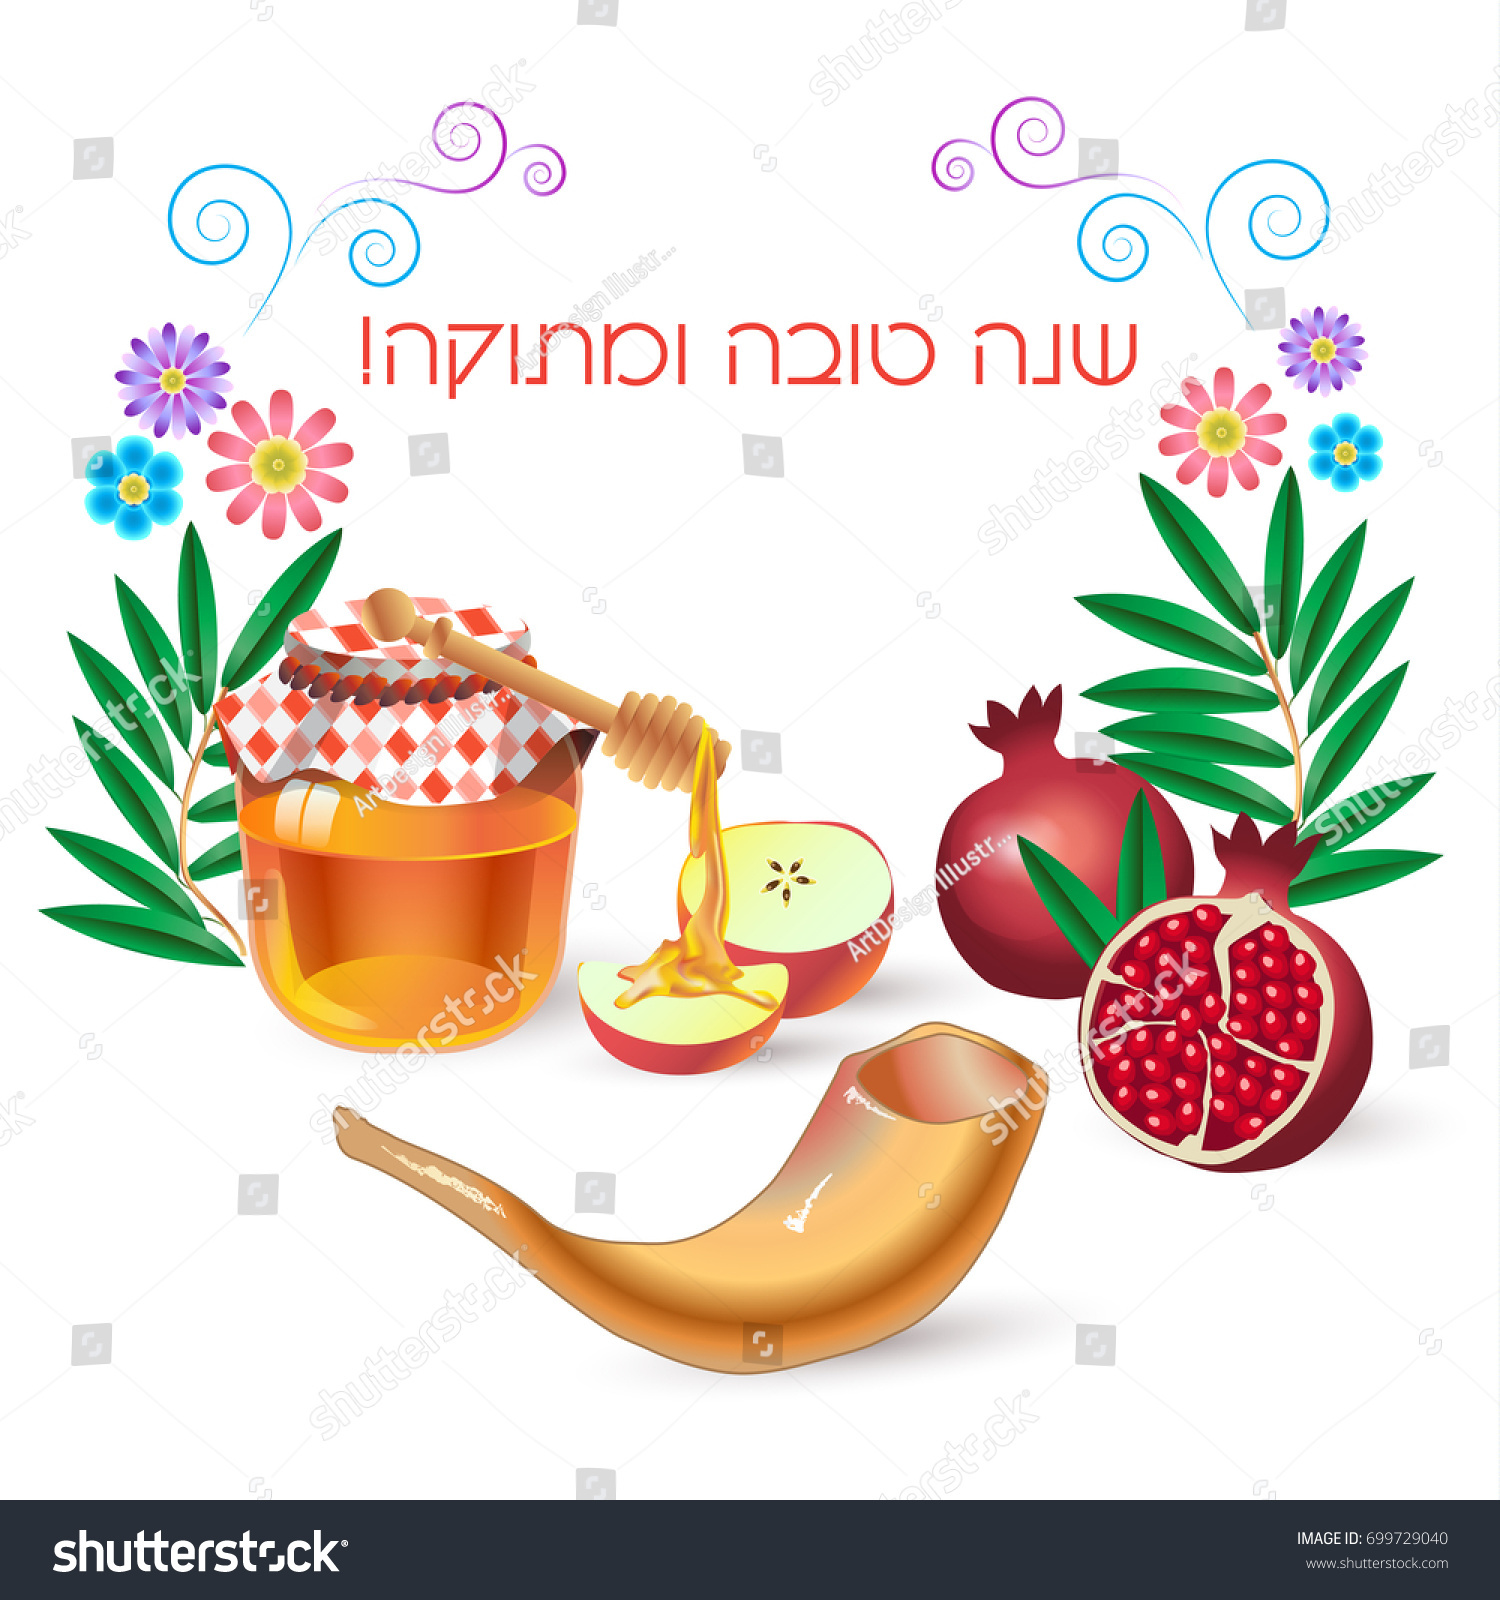 Rosh hashanah card jewish new year stock vector 699729040 shutterstock rosh hashanah card jewish new year greeting text shana tova on hebrew m4hsunfo